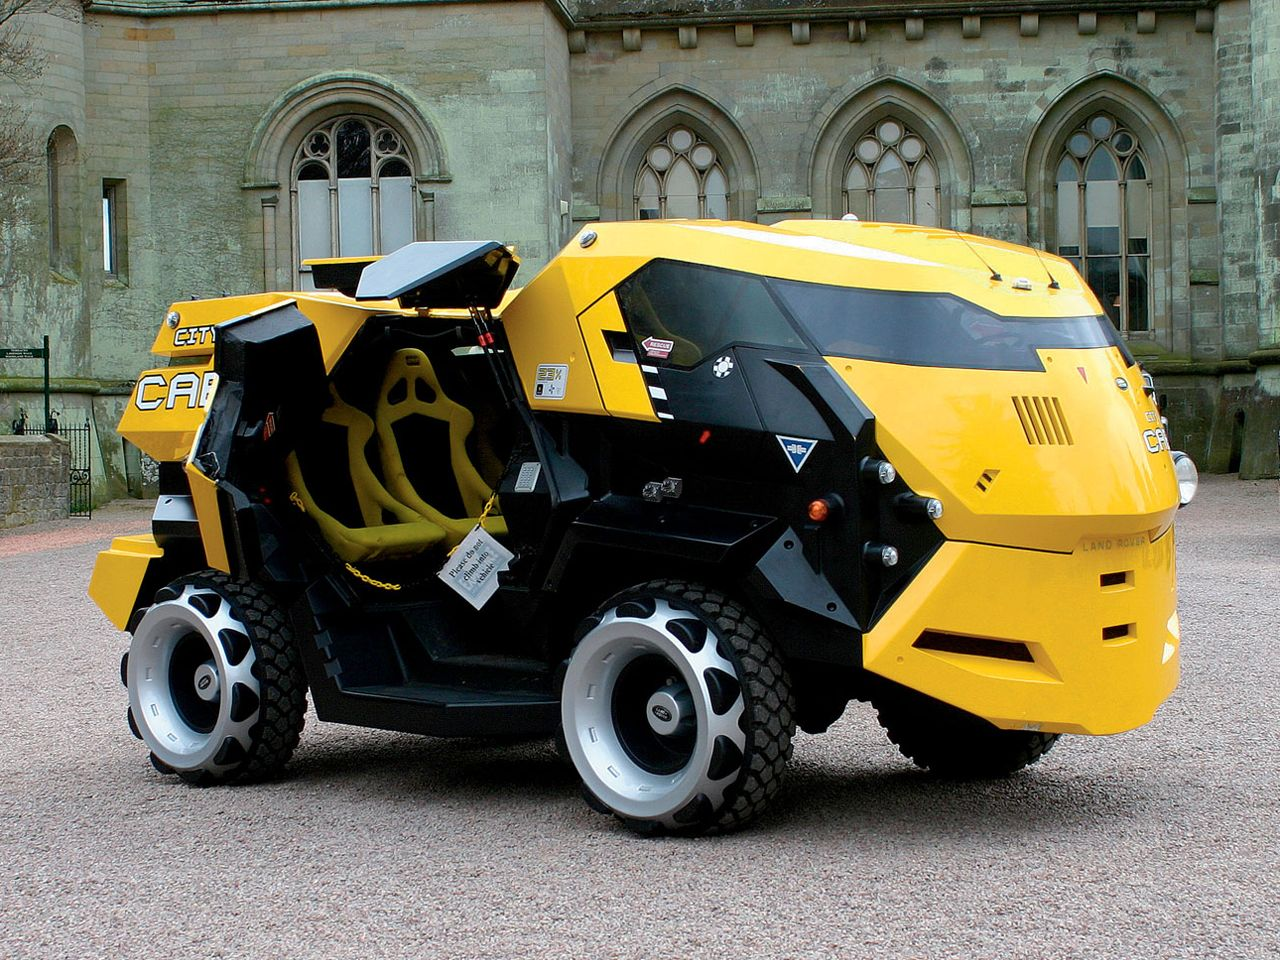 The Petrol Stop Judge Dredd Land Rover City Cabs Vehicles Futuristic Cars Trucks